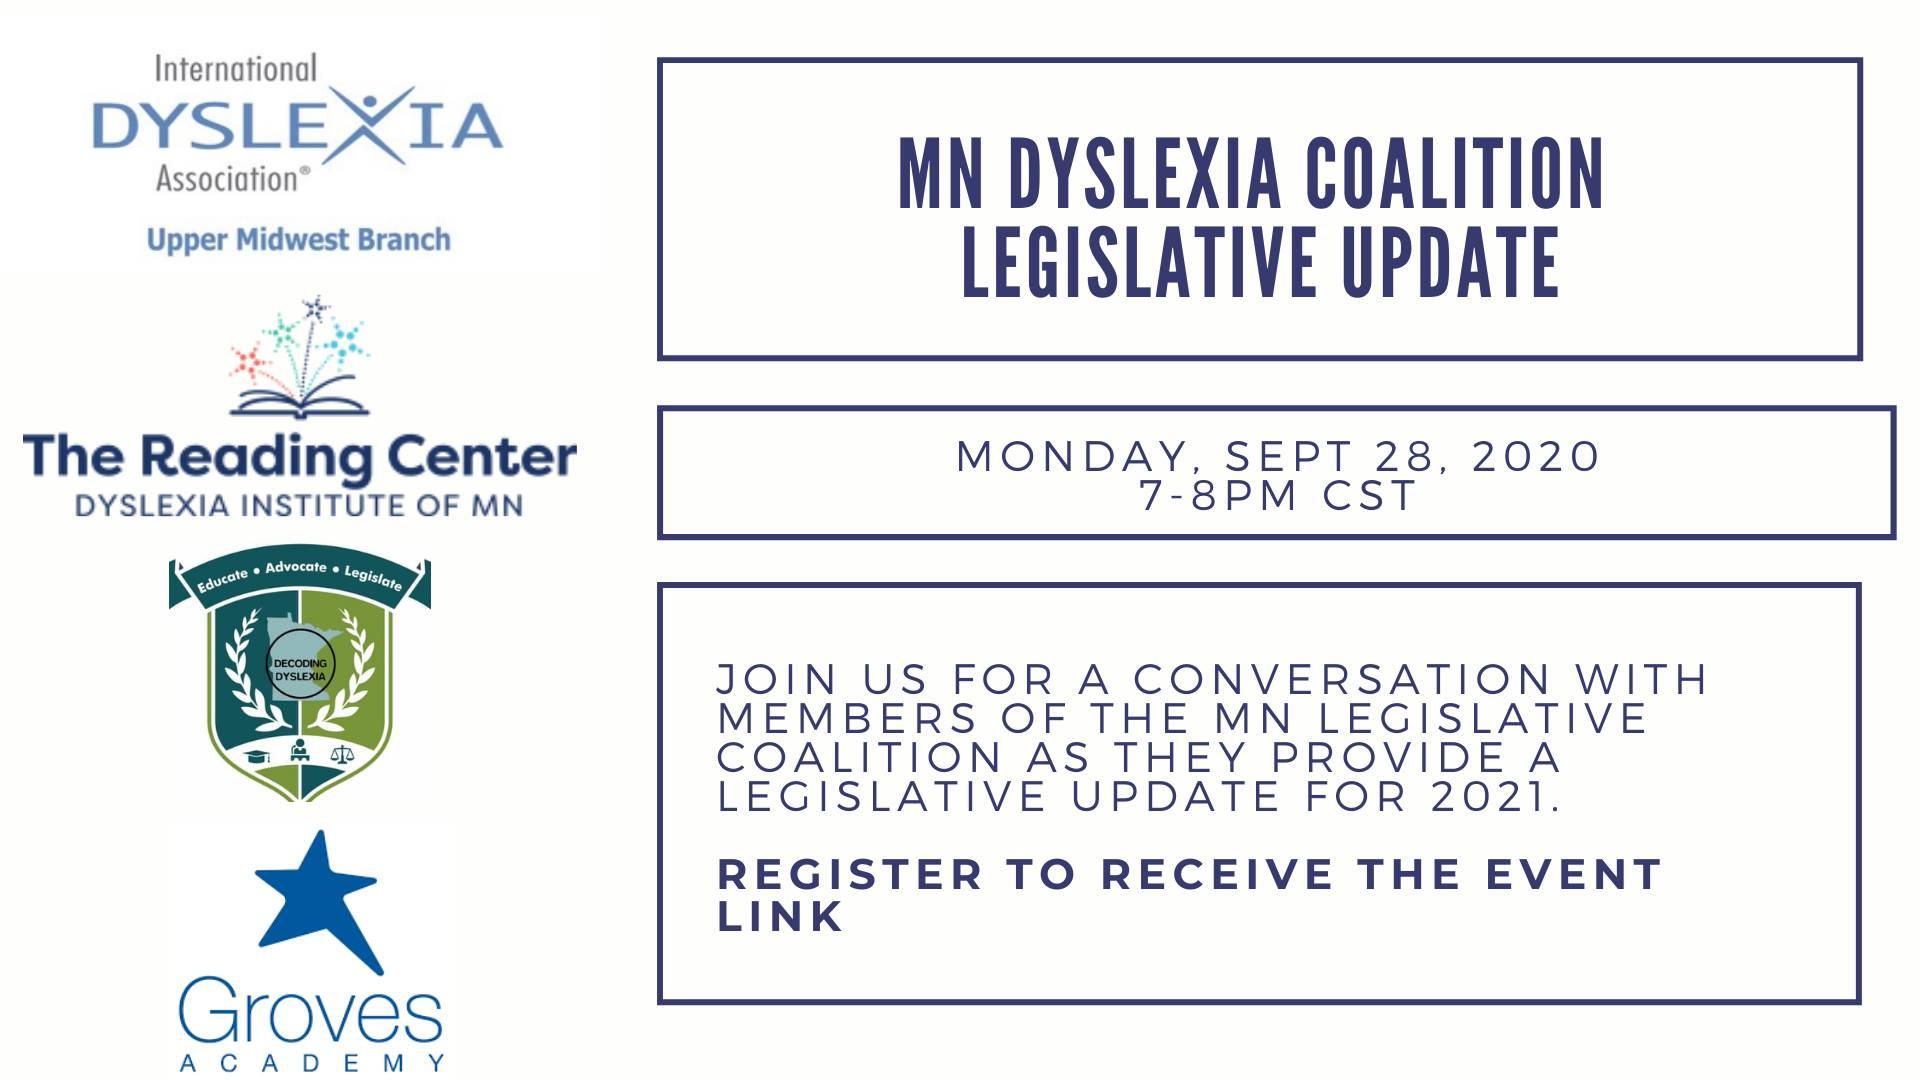 Coalition Event on Sept 28th at 7pm